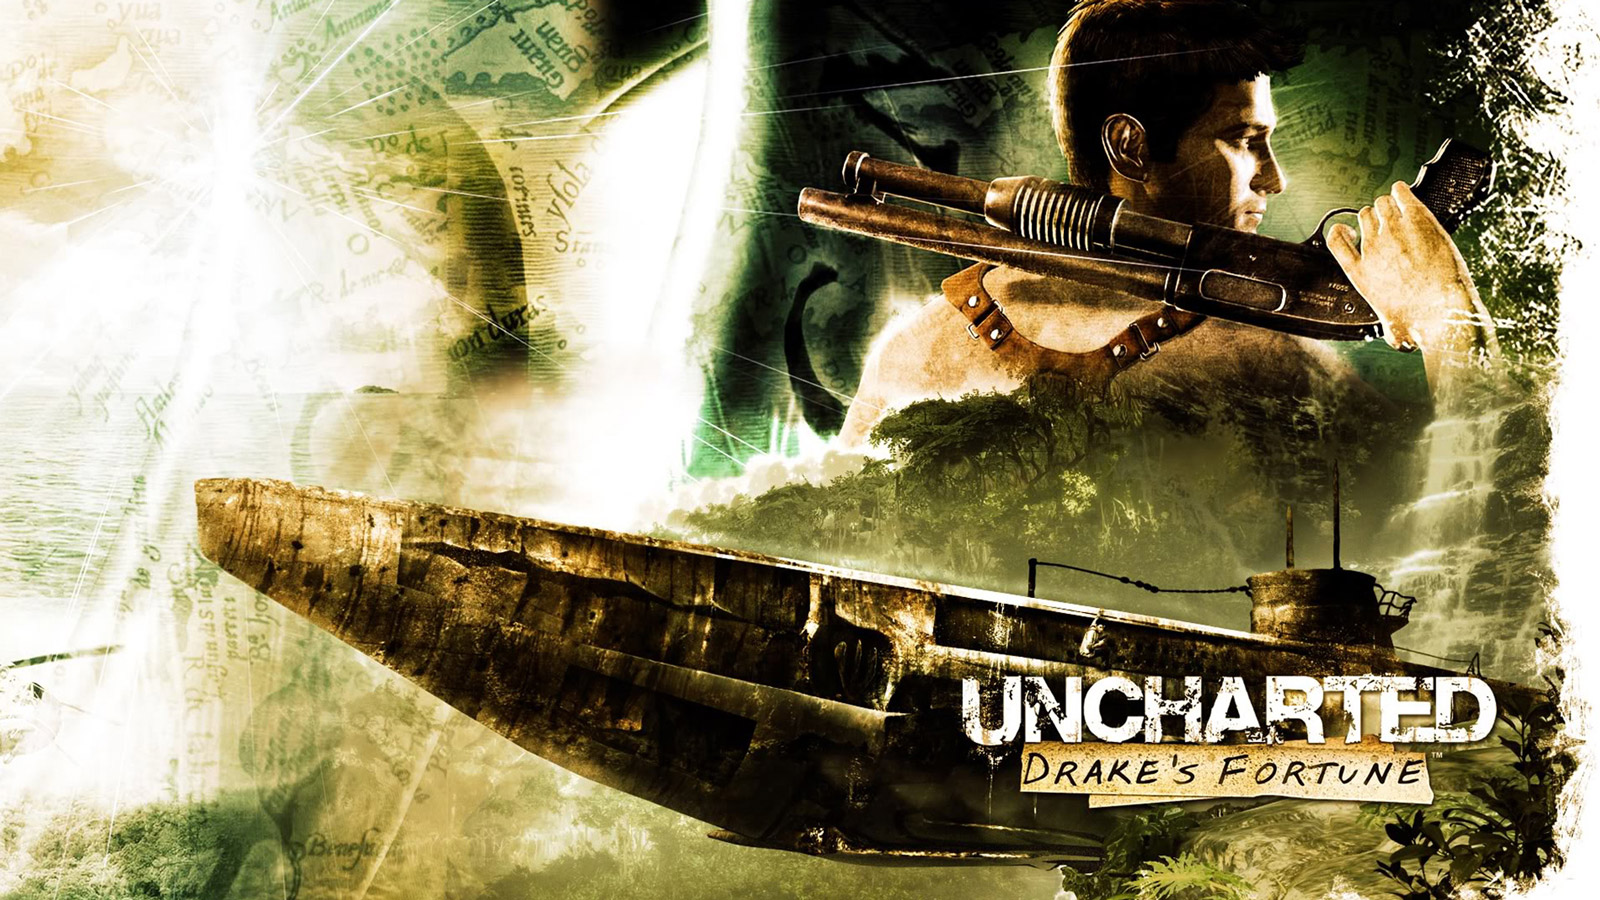 Free Uncharted: Drake's Fortune Wallpaper in 1600x900